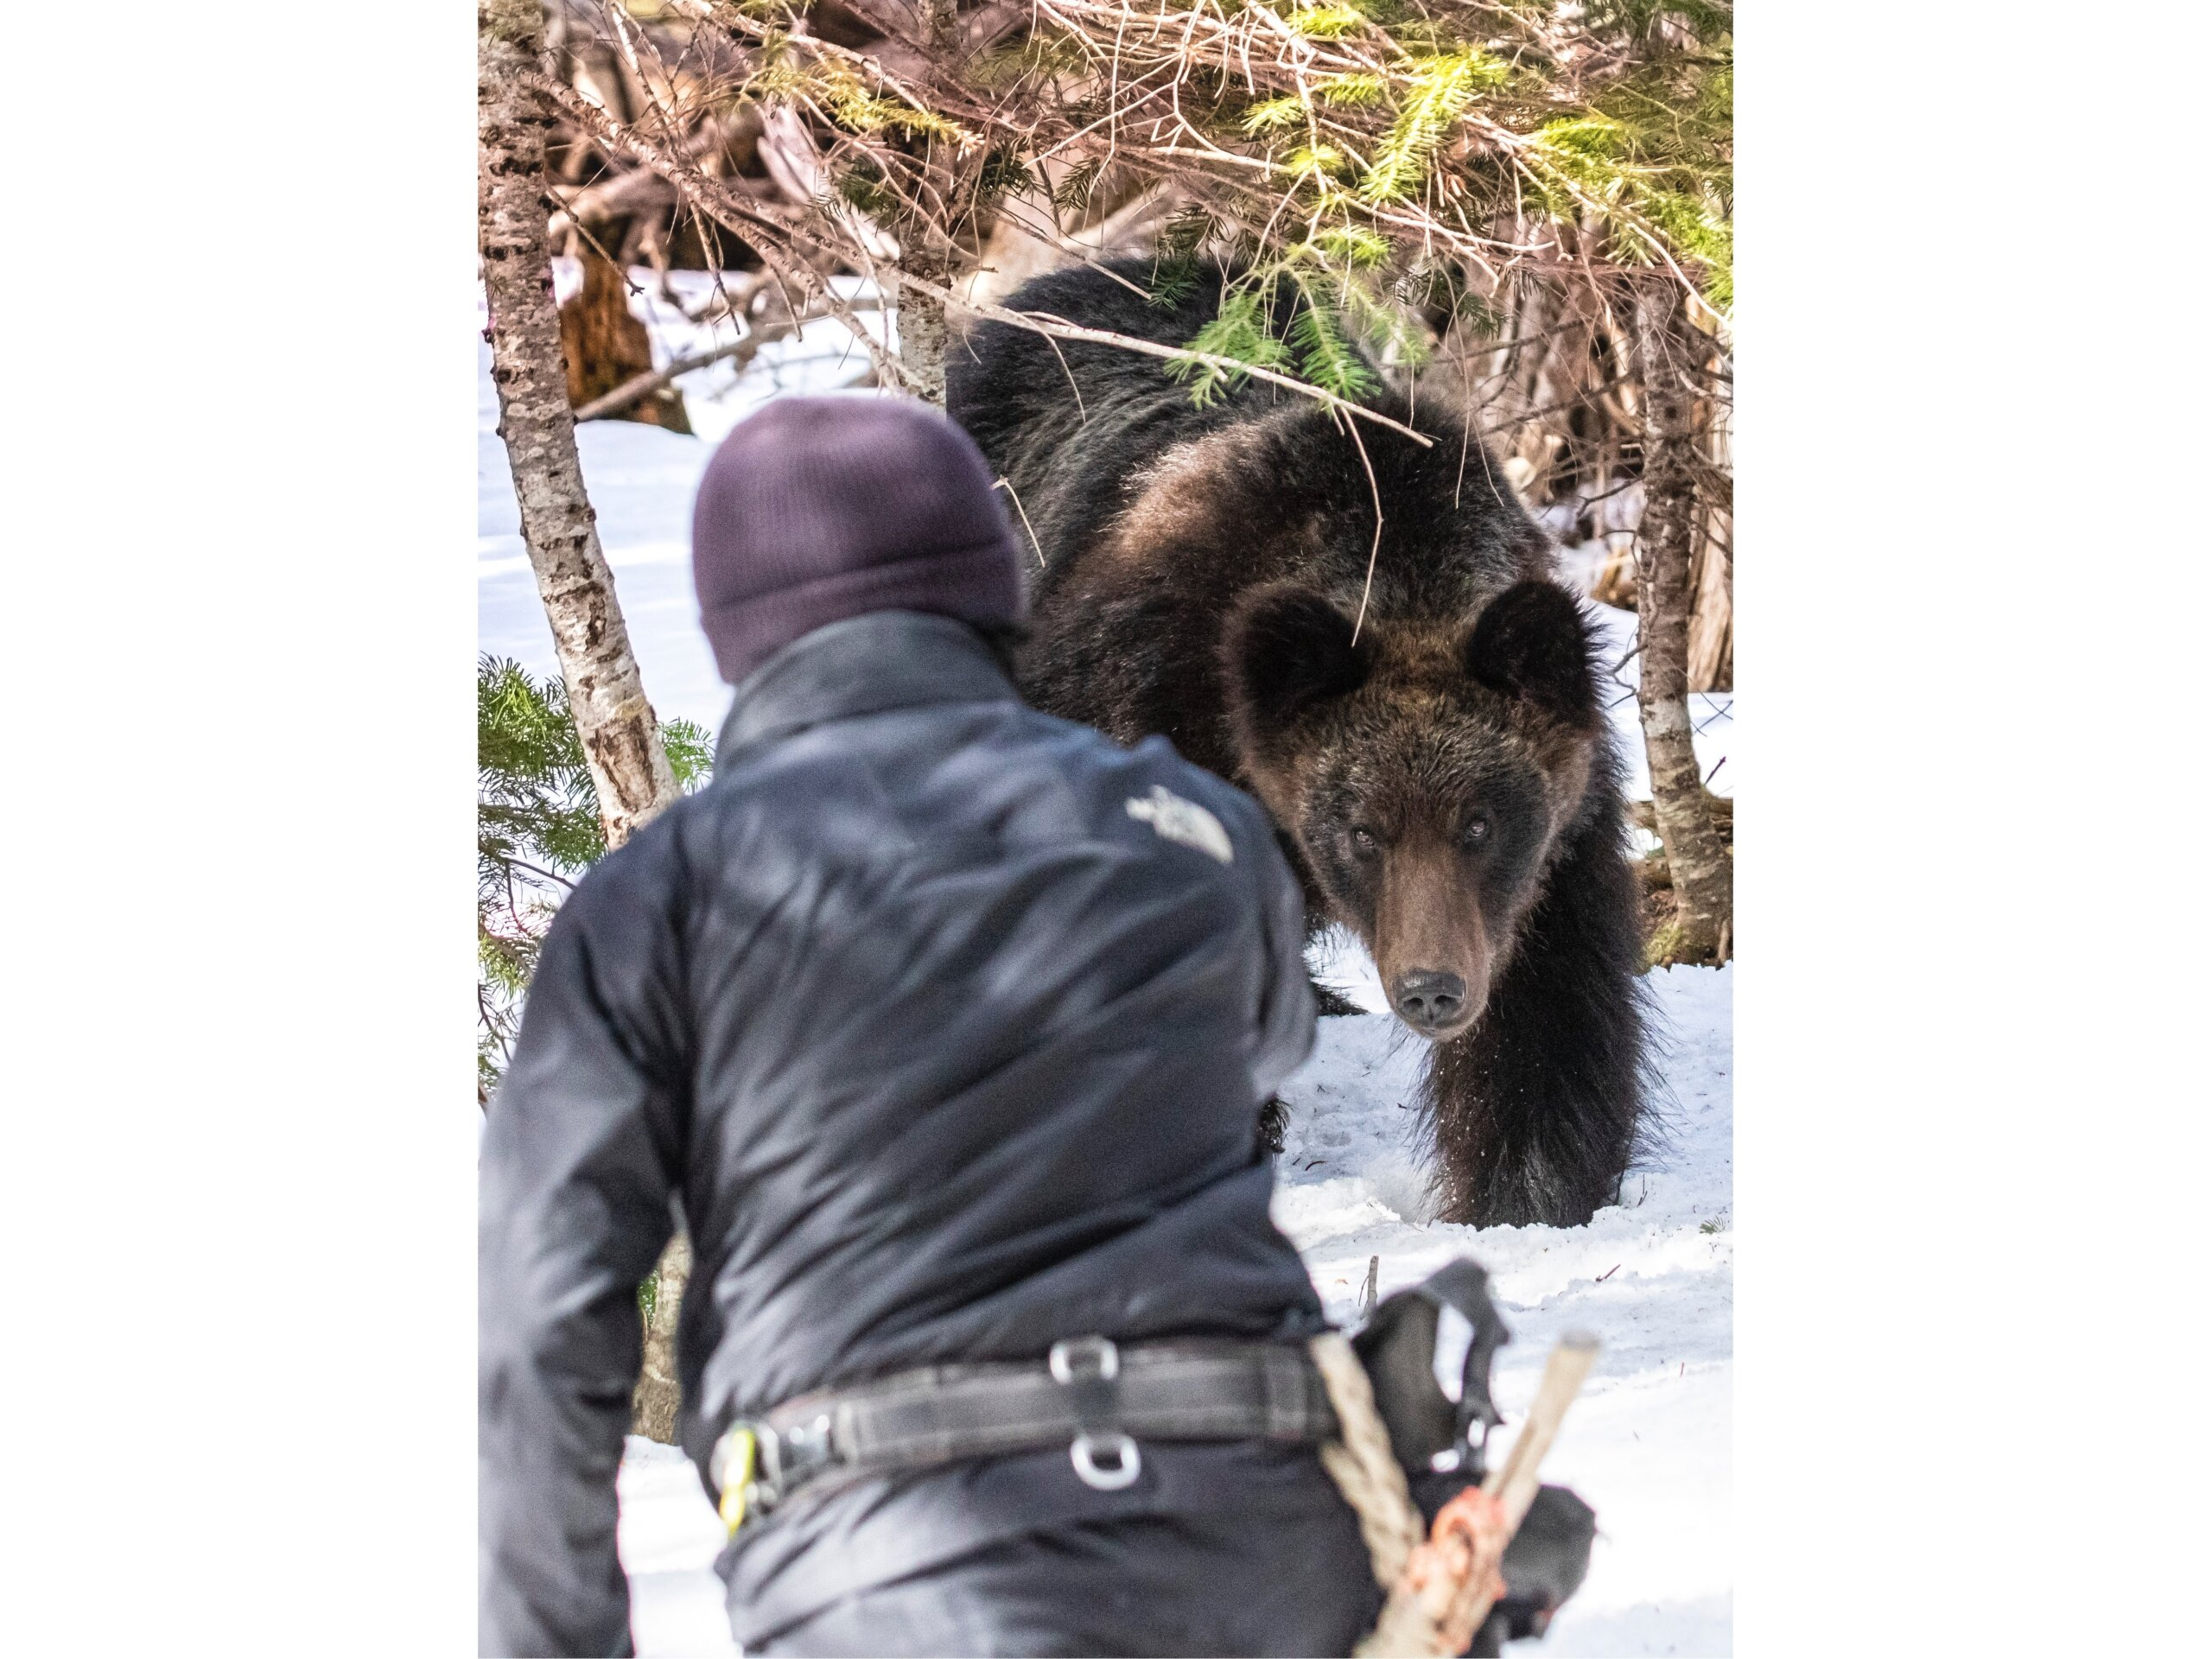 Seeing Kishimoto and his guide, the bear made a beeline for the pair, and made it to within four meters when the photographer managed to get his snap. ⒸKishimoto Hideo